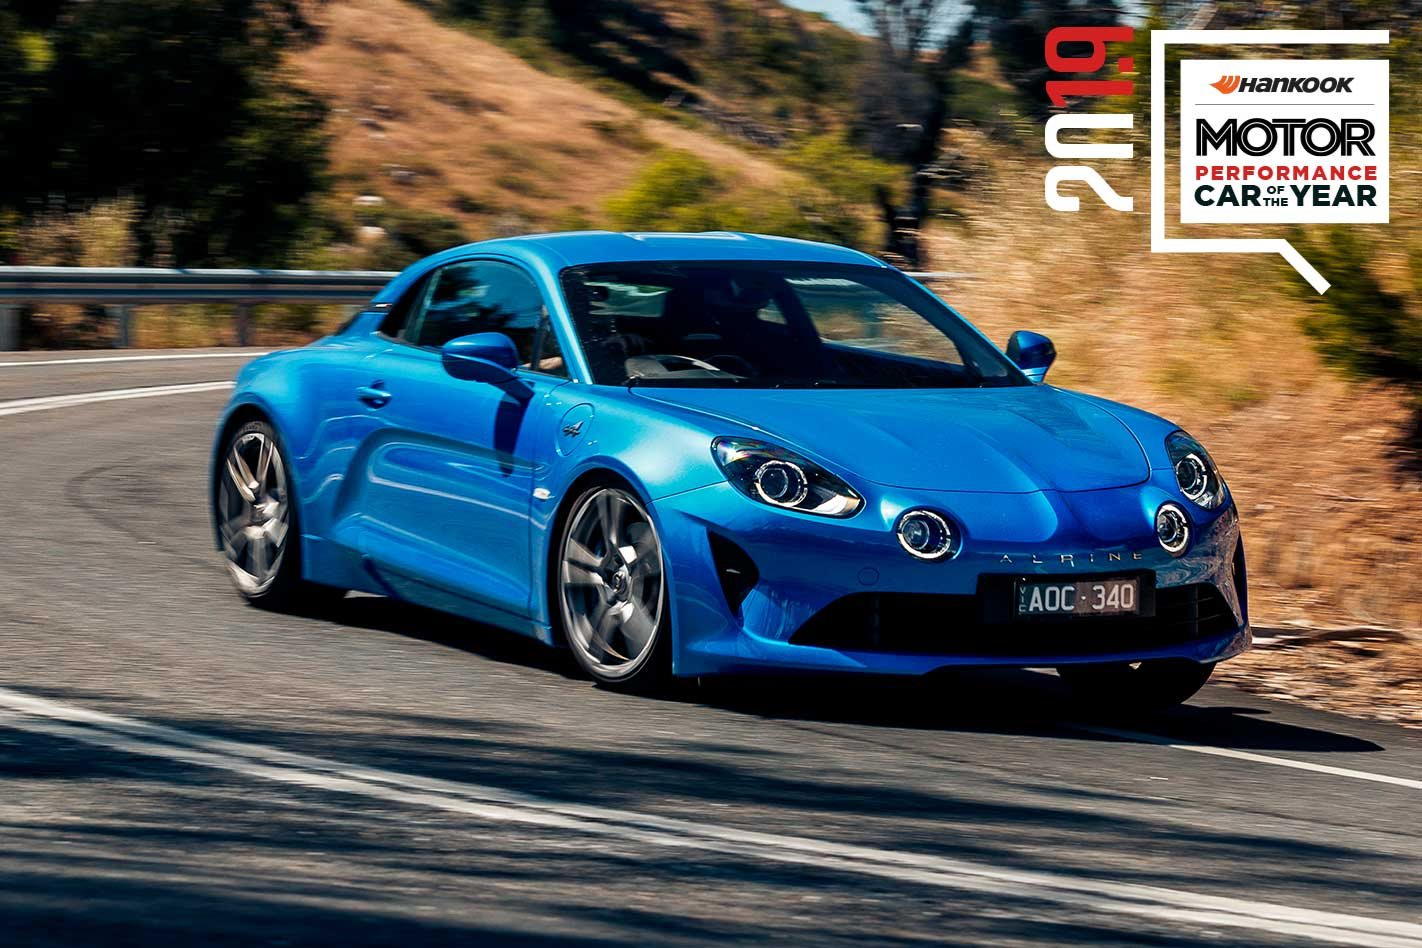 Alpine A110 Makes A Comeback To Take 8th In Performance Car Of The